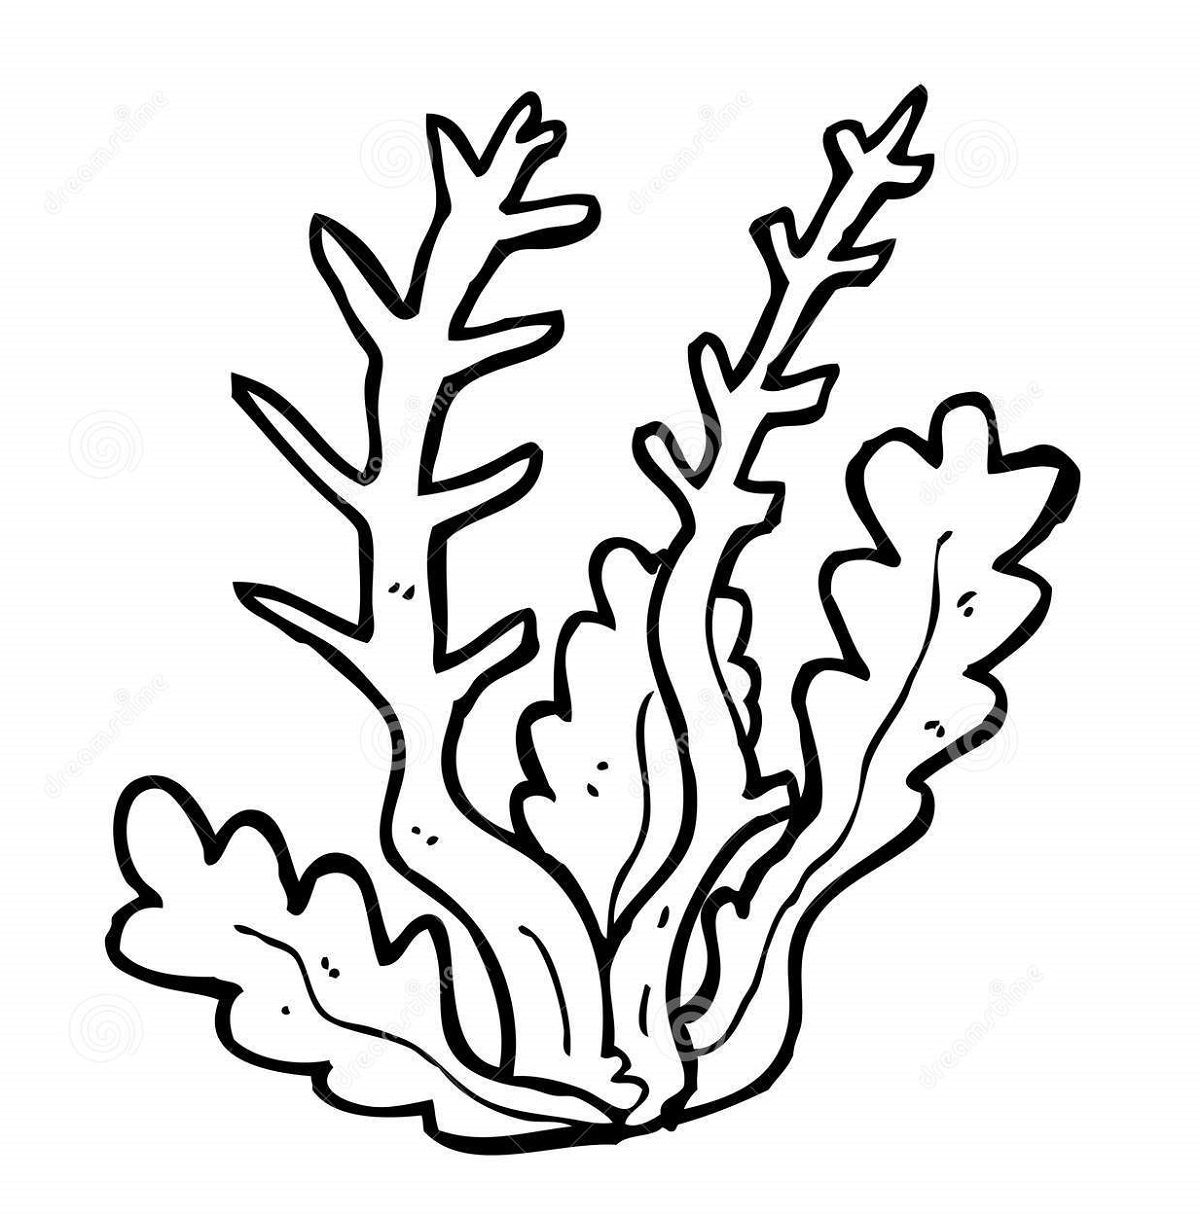 Seaweed C Coloring Pages For Kids Educative Printable